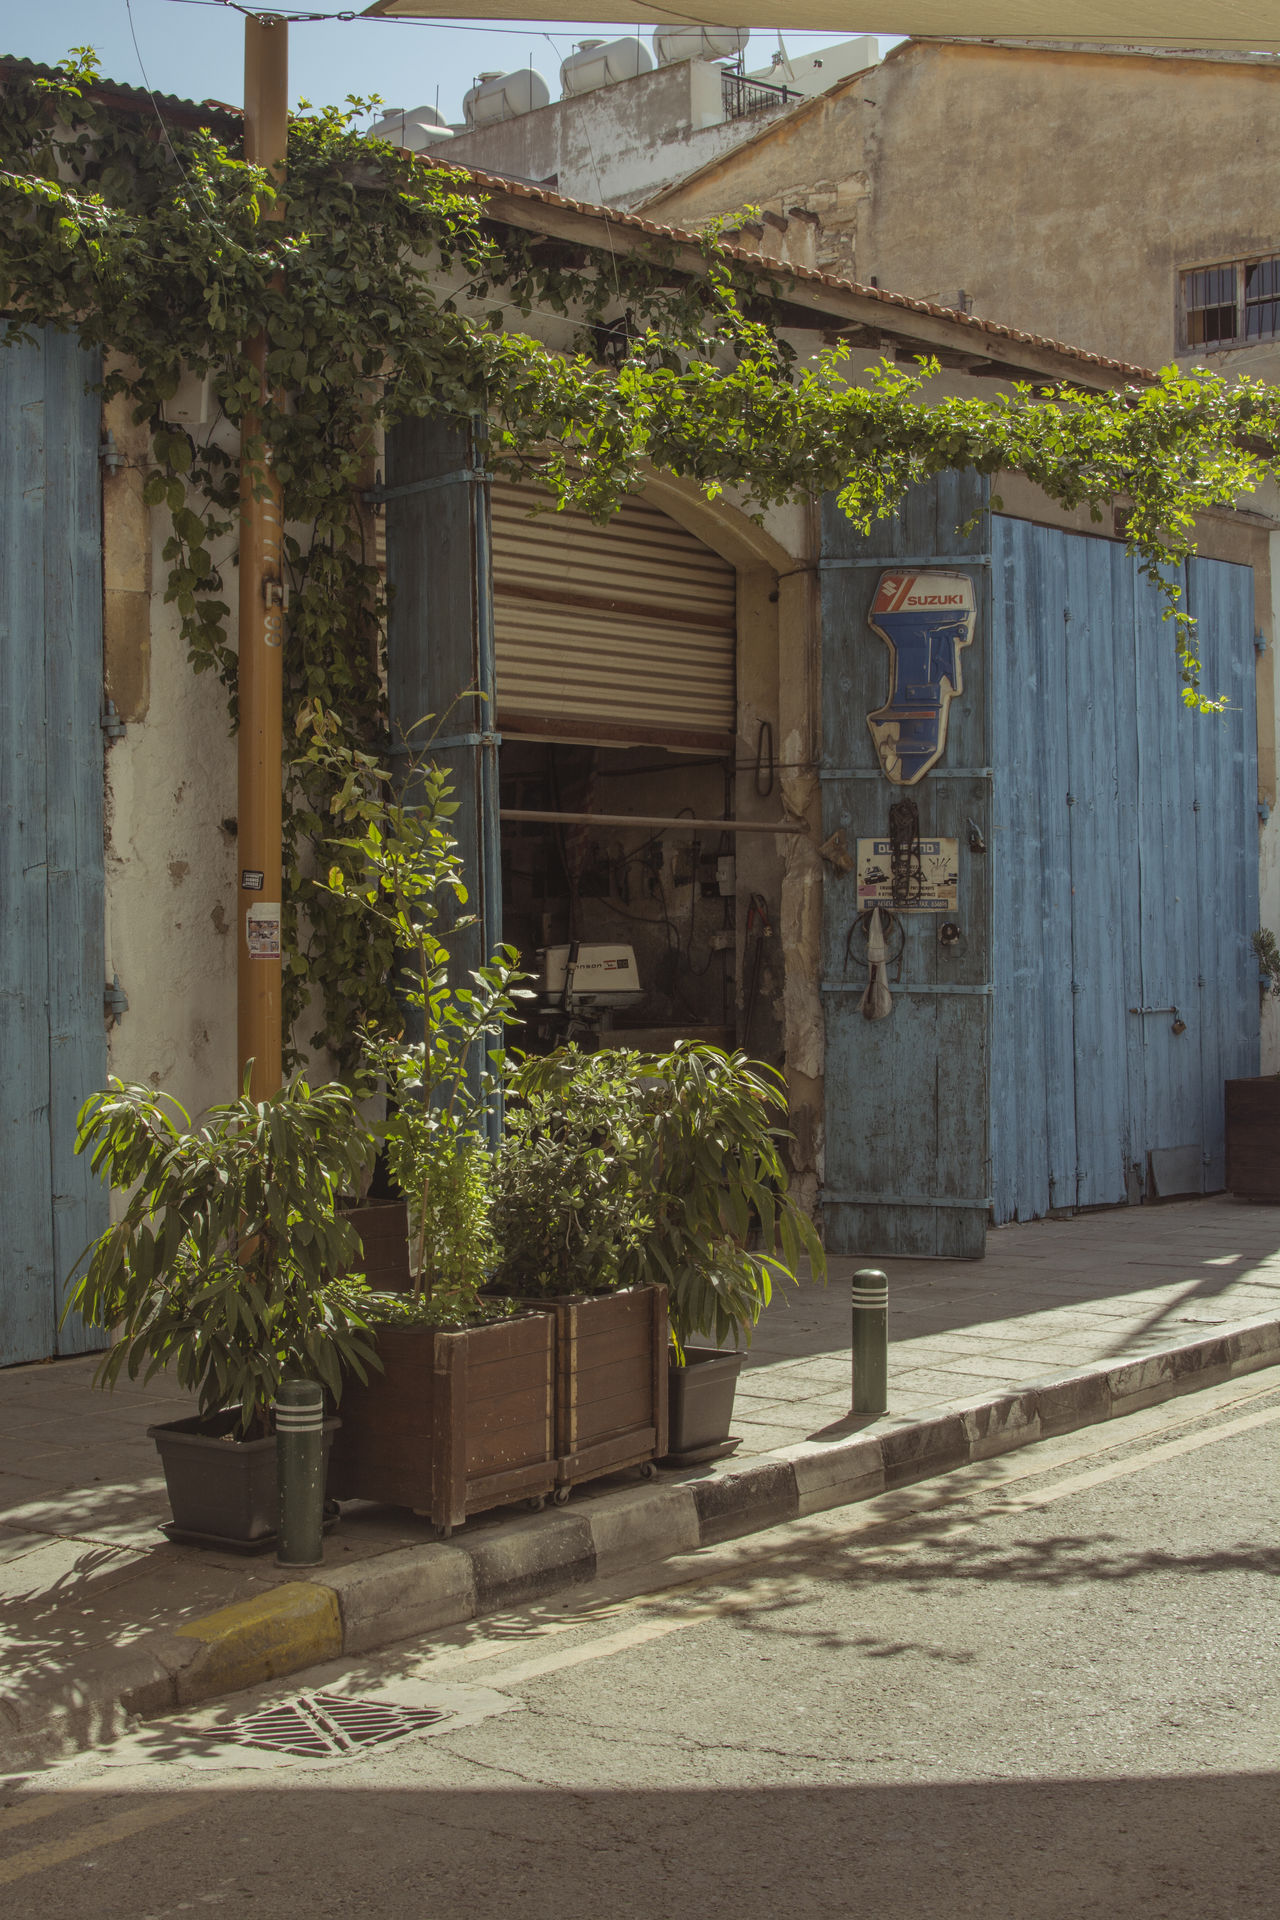 Larnaca Old Street Architecture Building Exterior Built Structure Cyprus Day Growth Nature No People Old Street Outdoors Plant Potted Plant The Great Outdoors - 2017 EyeEm Awards Tree